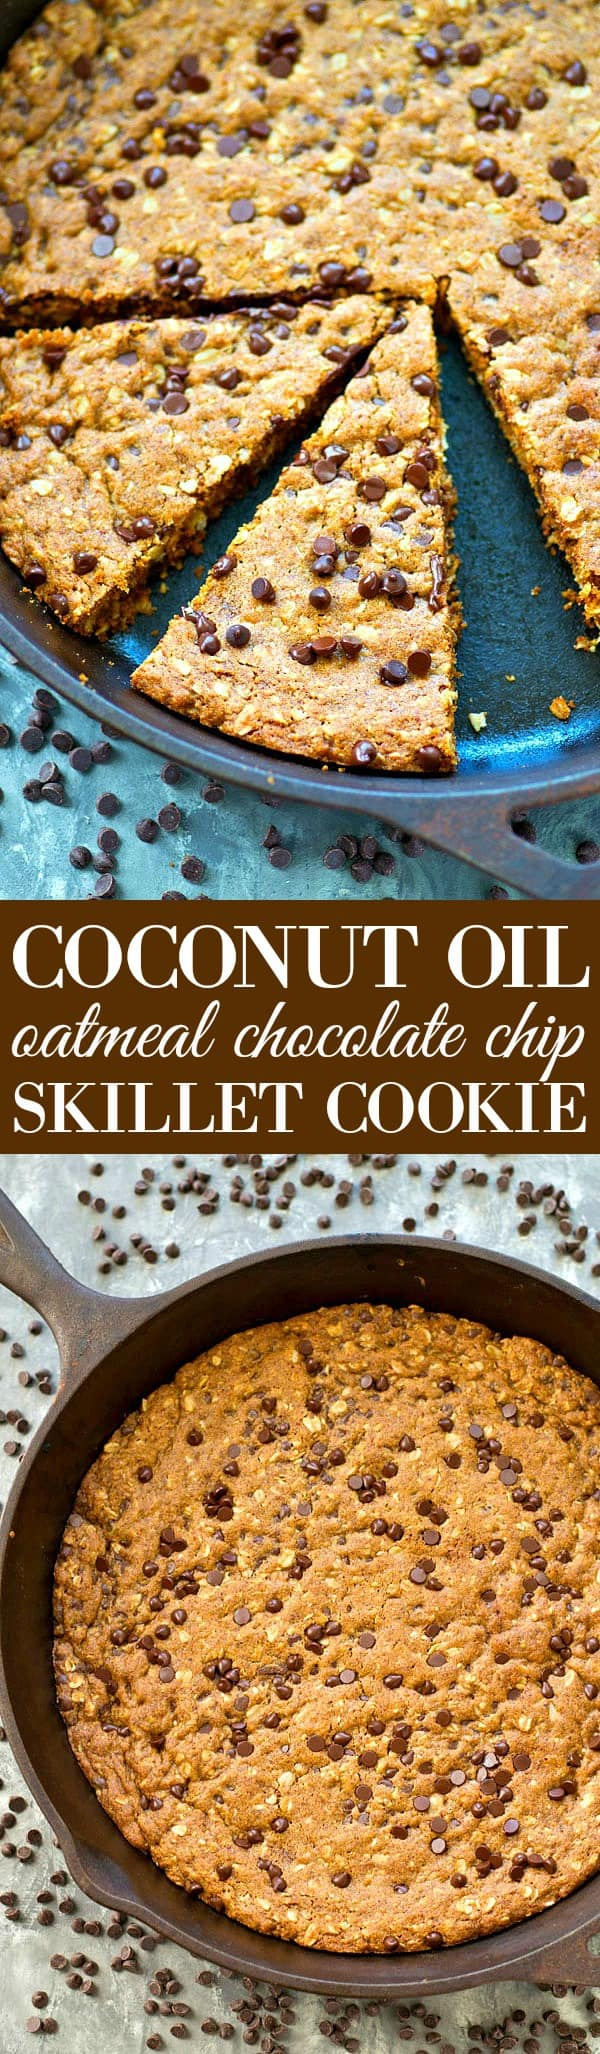 NO butter in this insanely-soft and chewy oatmeal chocolate chip skillet cookie! The dough mixes up in one bowl and it all bakes up in one skillet for whenever you get that warm cookie craving!